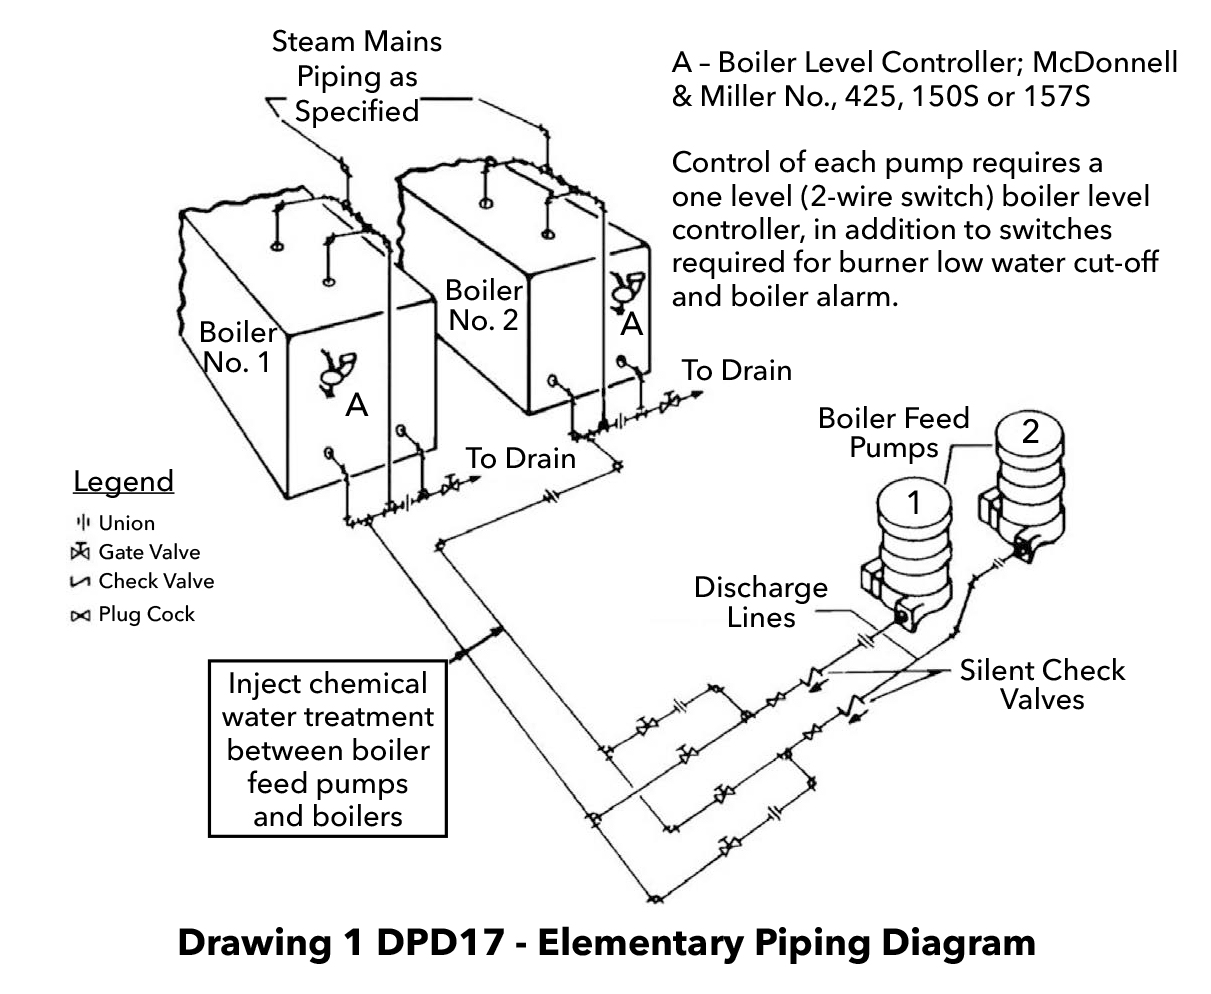 Typical Boiler Feed Unit Discharge Piping Arrangements Xylem Pump Wiring Diagram Drawing 1 Dpd08 A Shows Two Boilers With An Automatic Standby Arrangement In This Either Can Flow Being Directed To